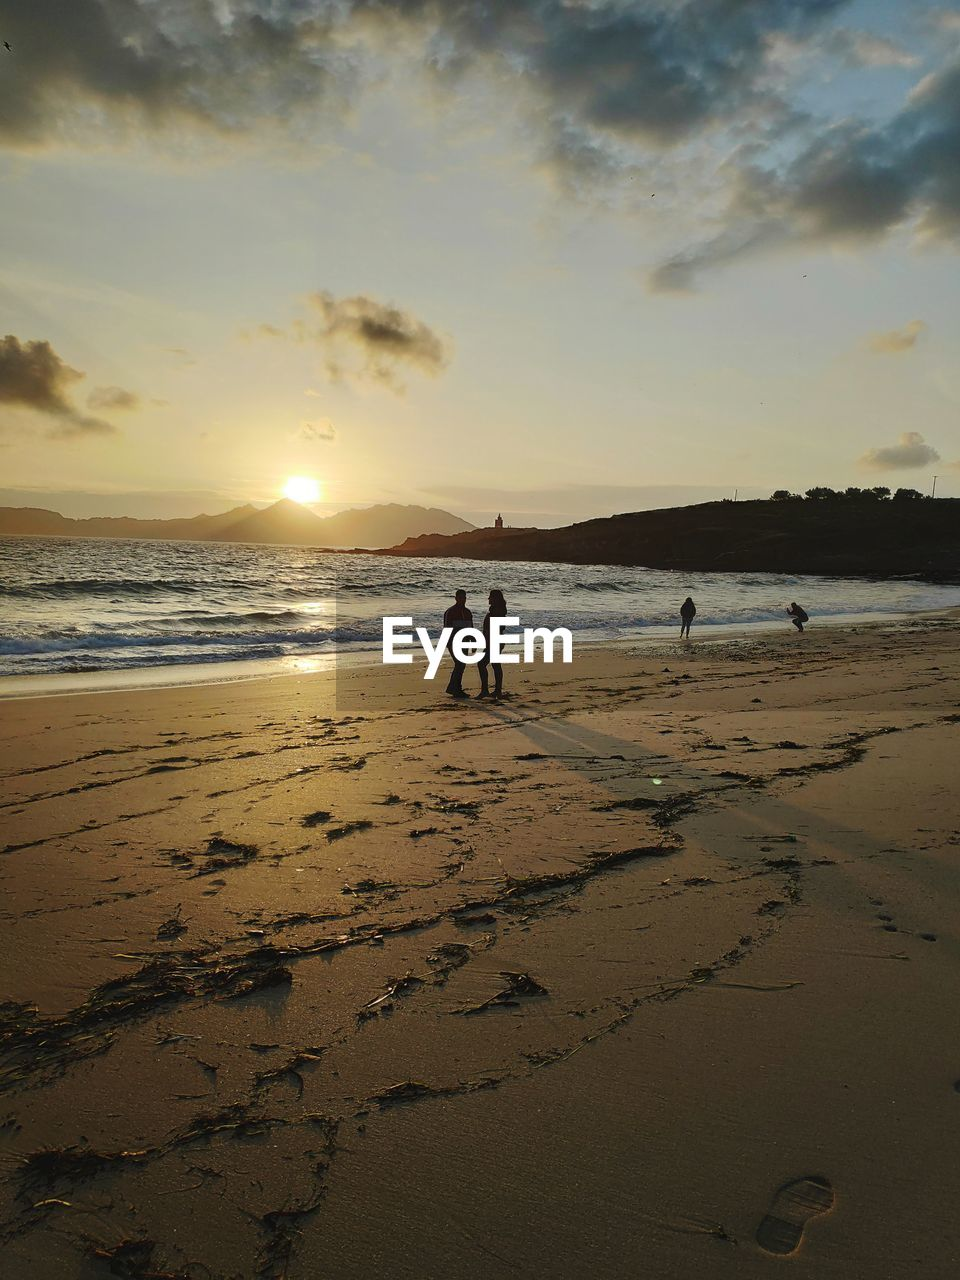 beach, sky, land, water, sea, sunset, beauty in nature, real people, scenics - nature, cloud - sky, nature, sand, leisure activity, men, lifestyles, group of people, adult, women, sun, horizon over water, outdoors, couple - relationship